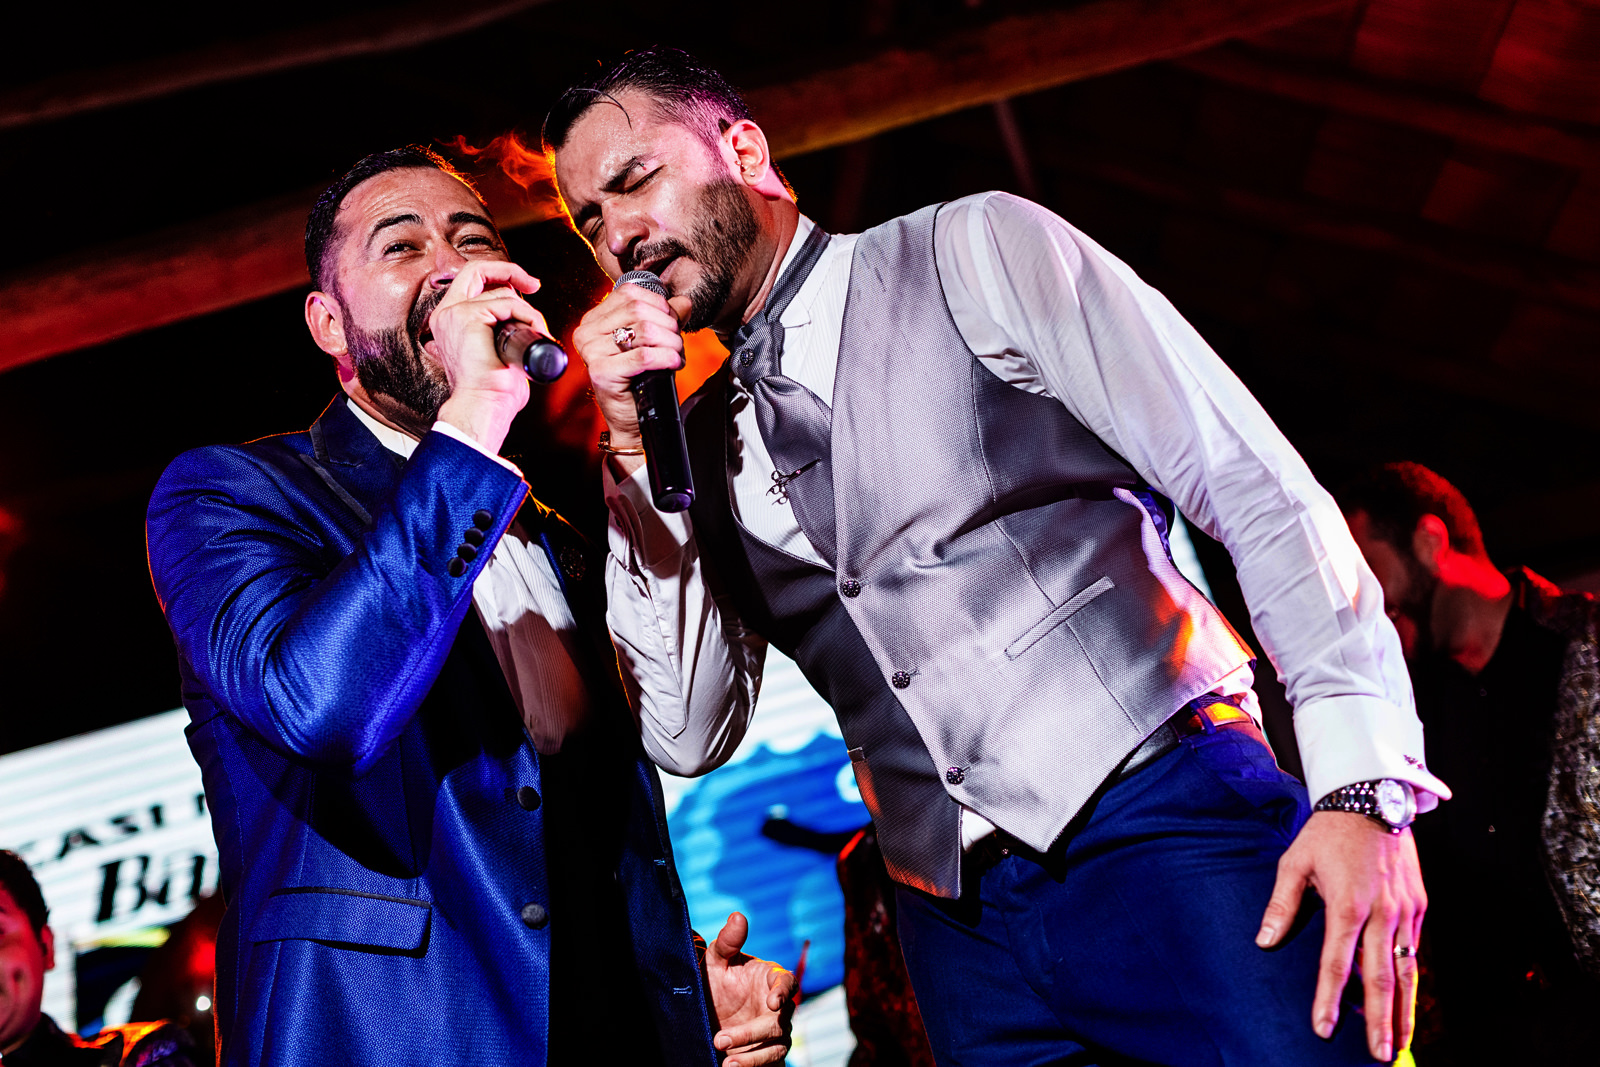 Grooms singing on the stage.